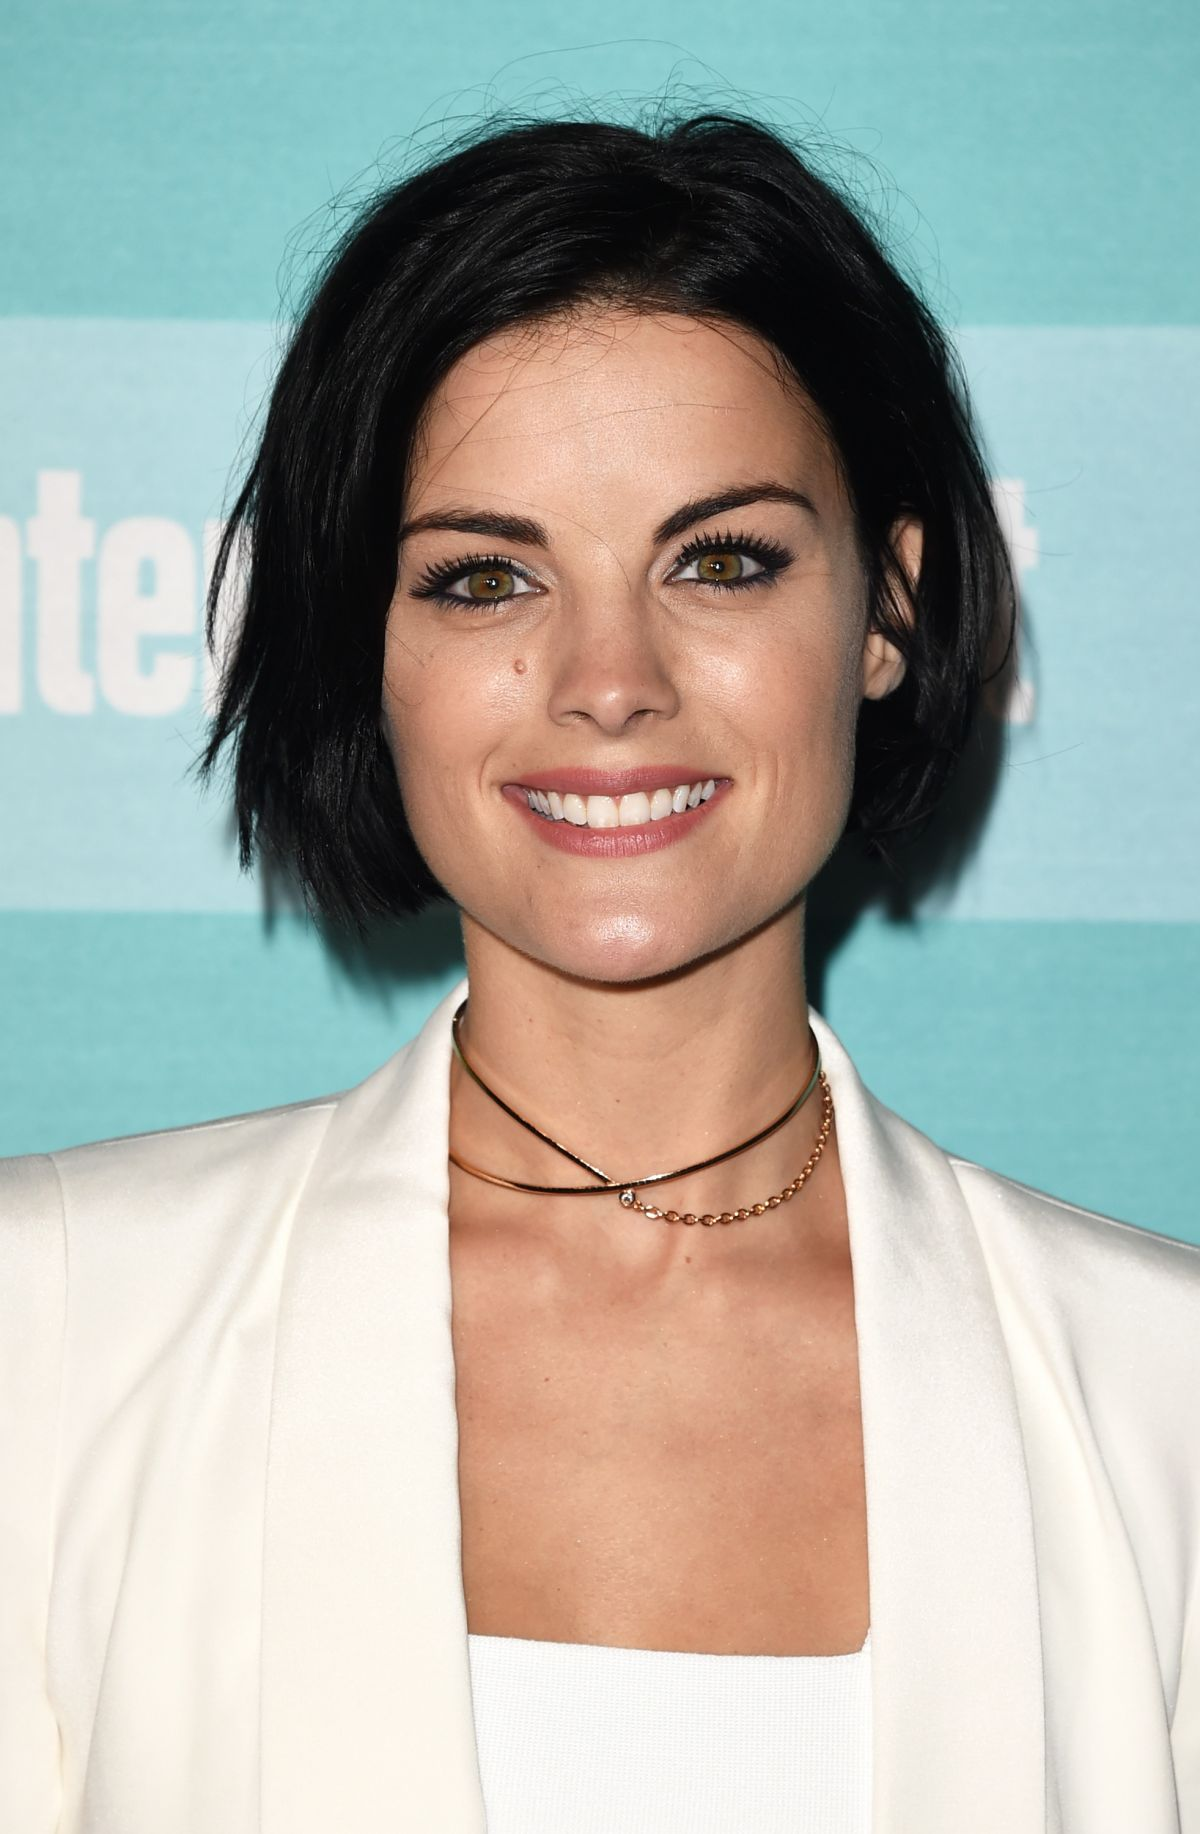 Jaimie Alexander At Entertainment Weekly Party Celebzz